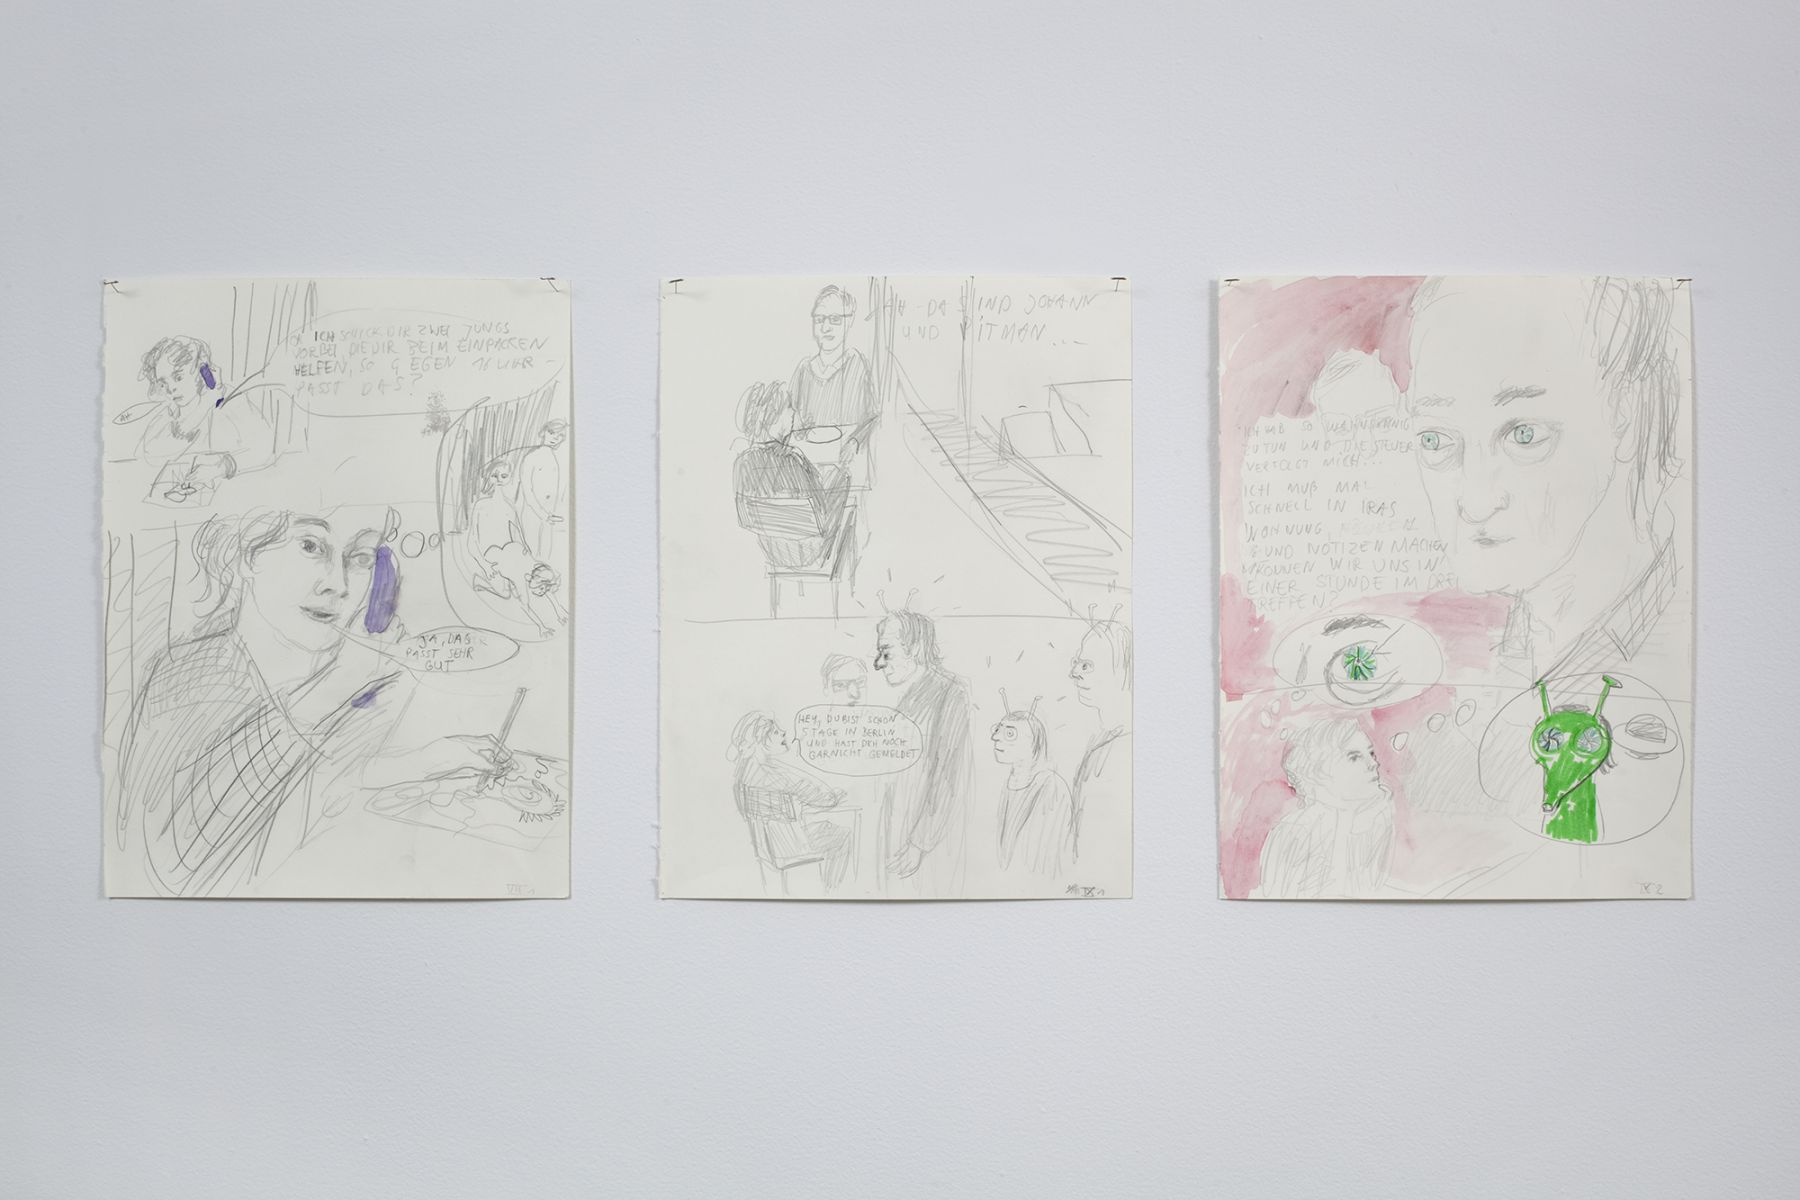 November, 2011 (detail), Pen, pencil, and watercolor on 64 sheets of paper, Dimensions variable